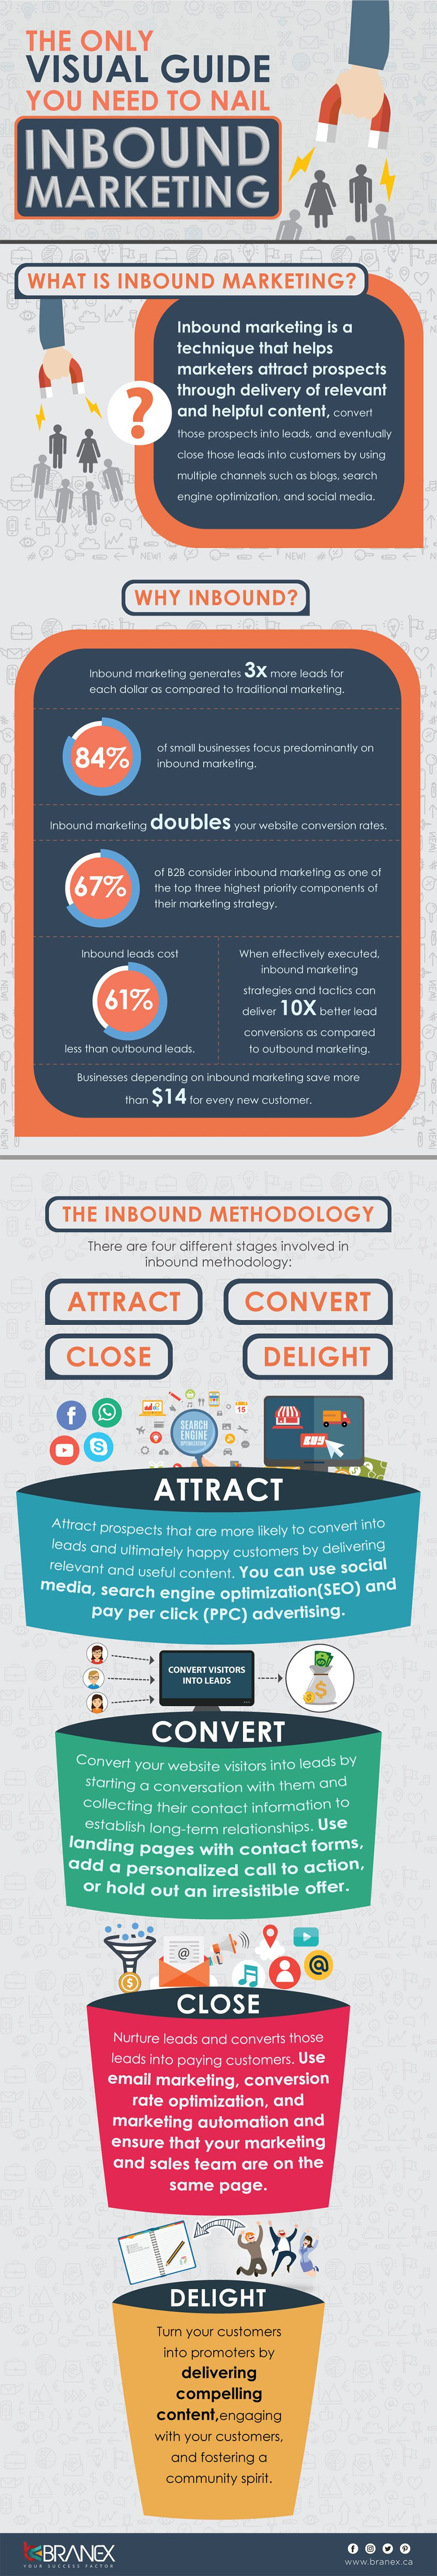 Inbound marketing Infograohic